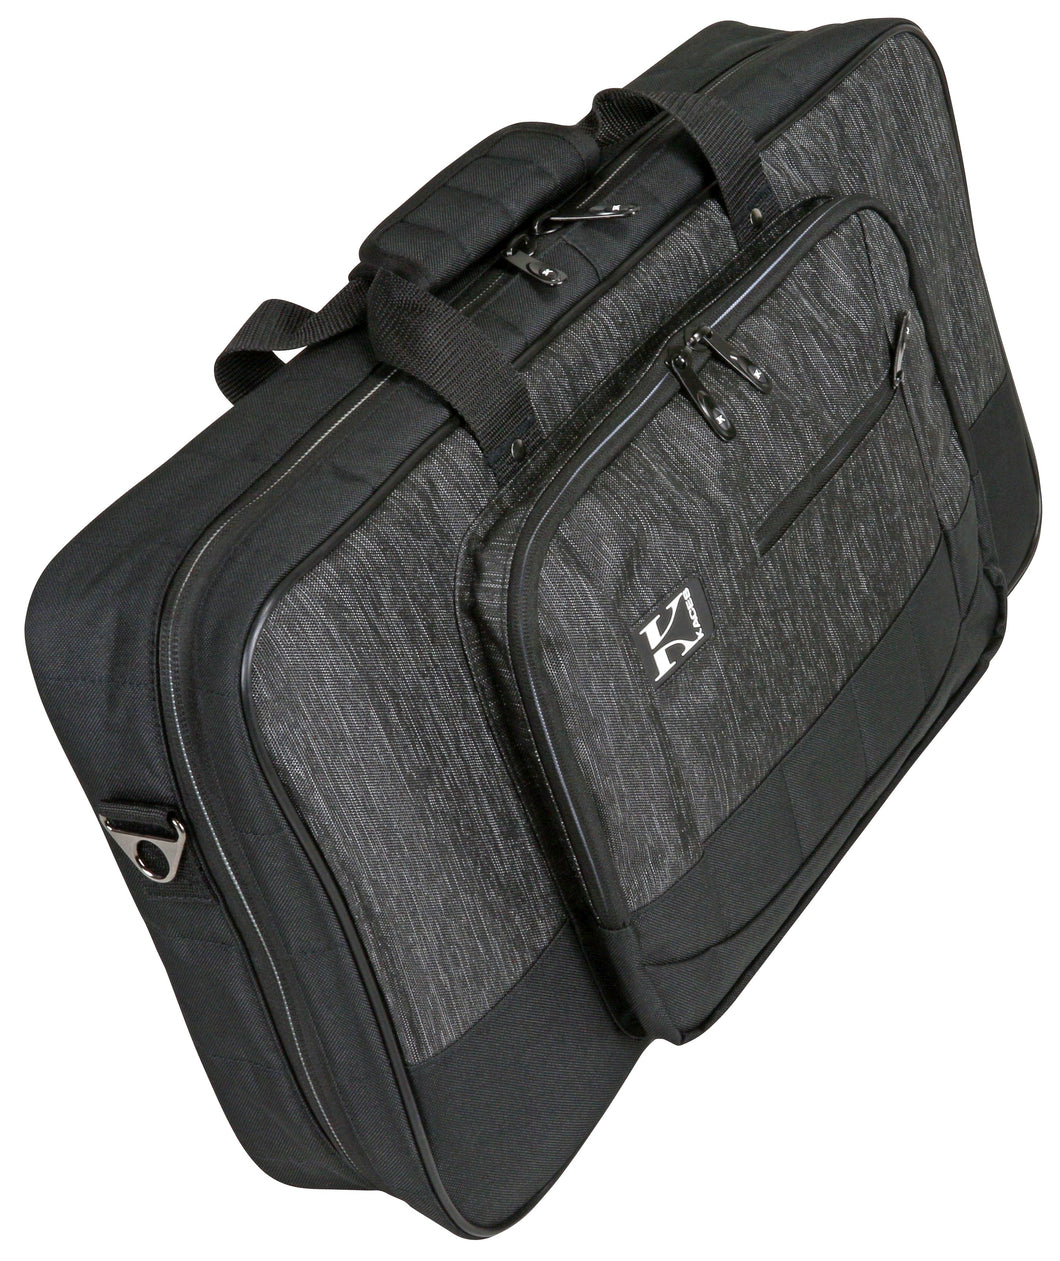 Luxe Keyboard & Gear Bag, 22.5